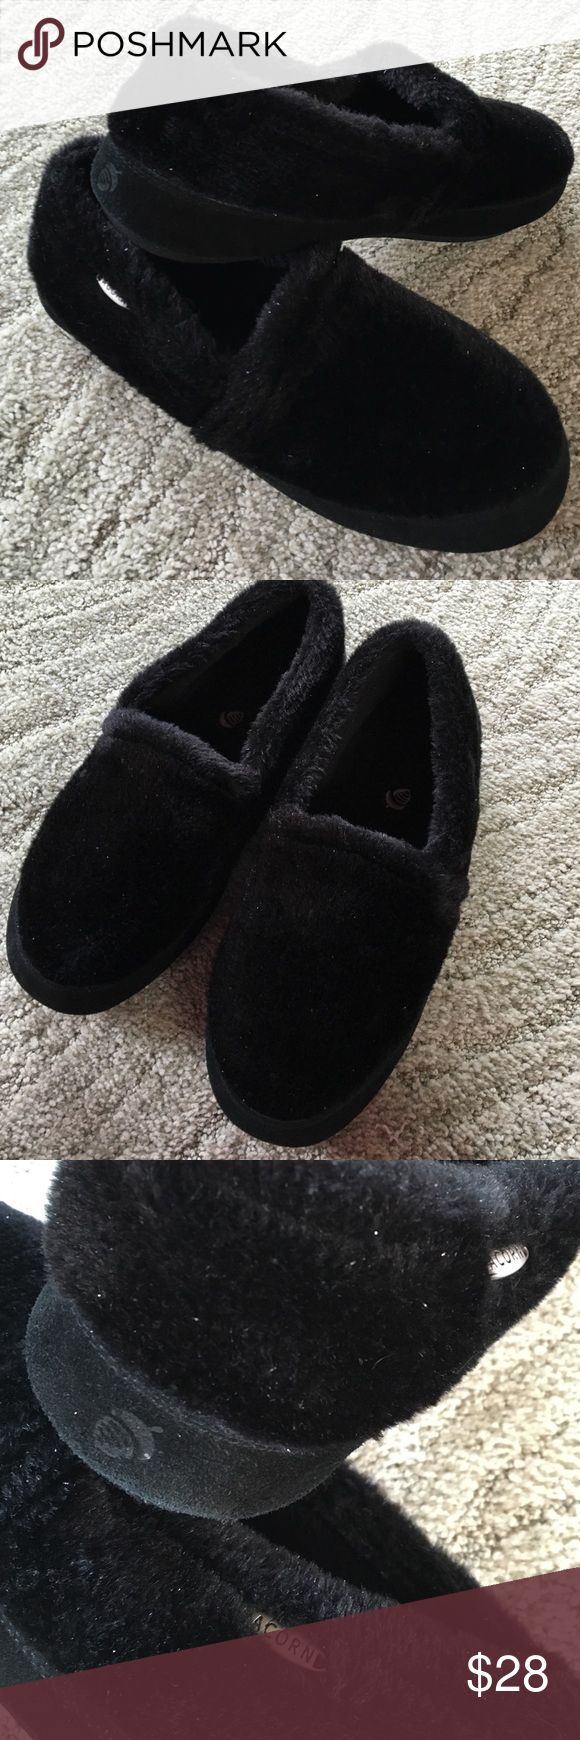 ACORN slippers black sparkles Sz 9 1/2 -10 1/2 ACORN Black slippers with sparkles size 9 1/2 to 10 1/2. Gently used. Small signs of wear on the bottom heel portion. Never worn outside.  Great for fall and winter! Acorn Shoes Slippers